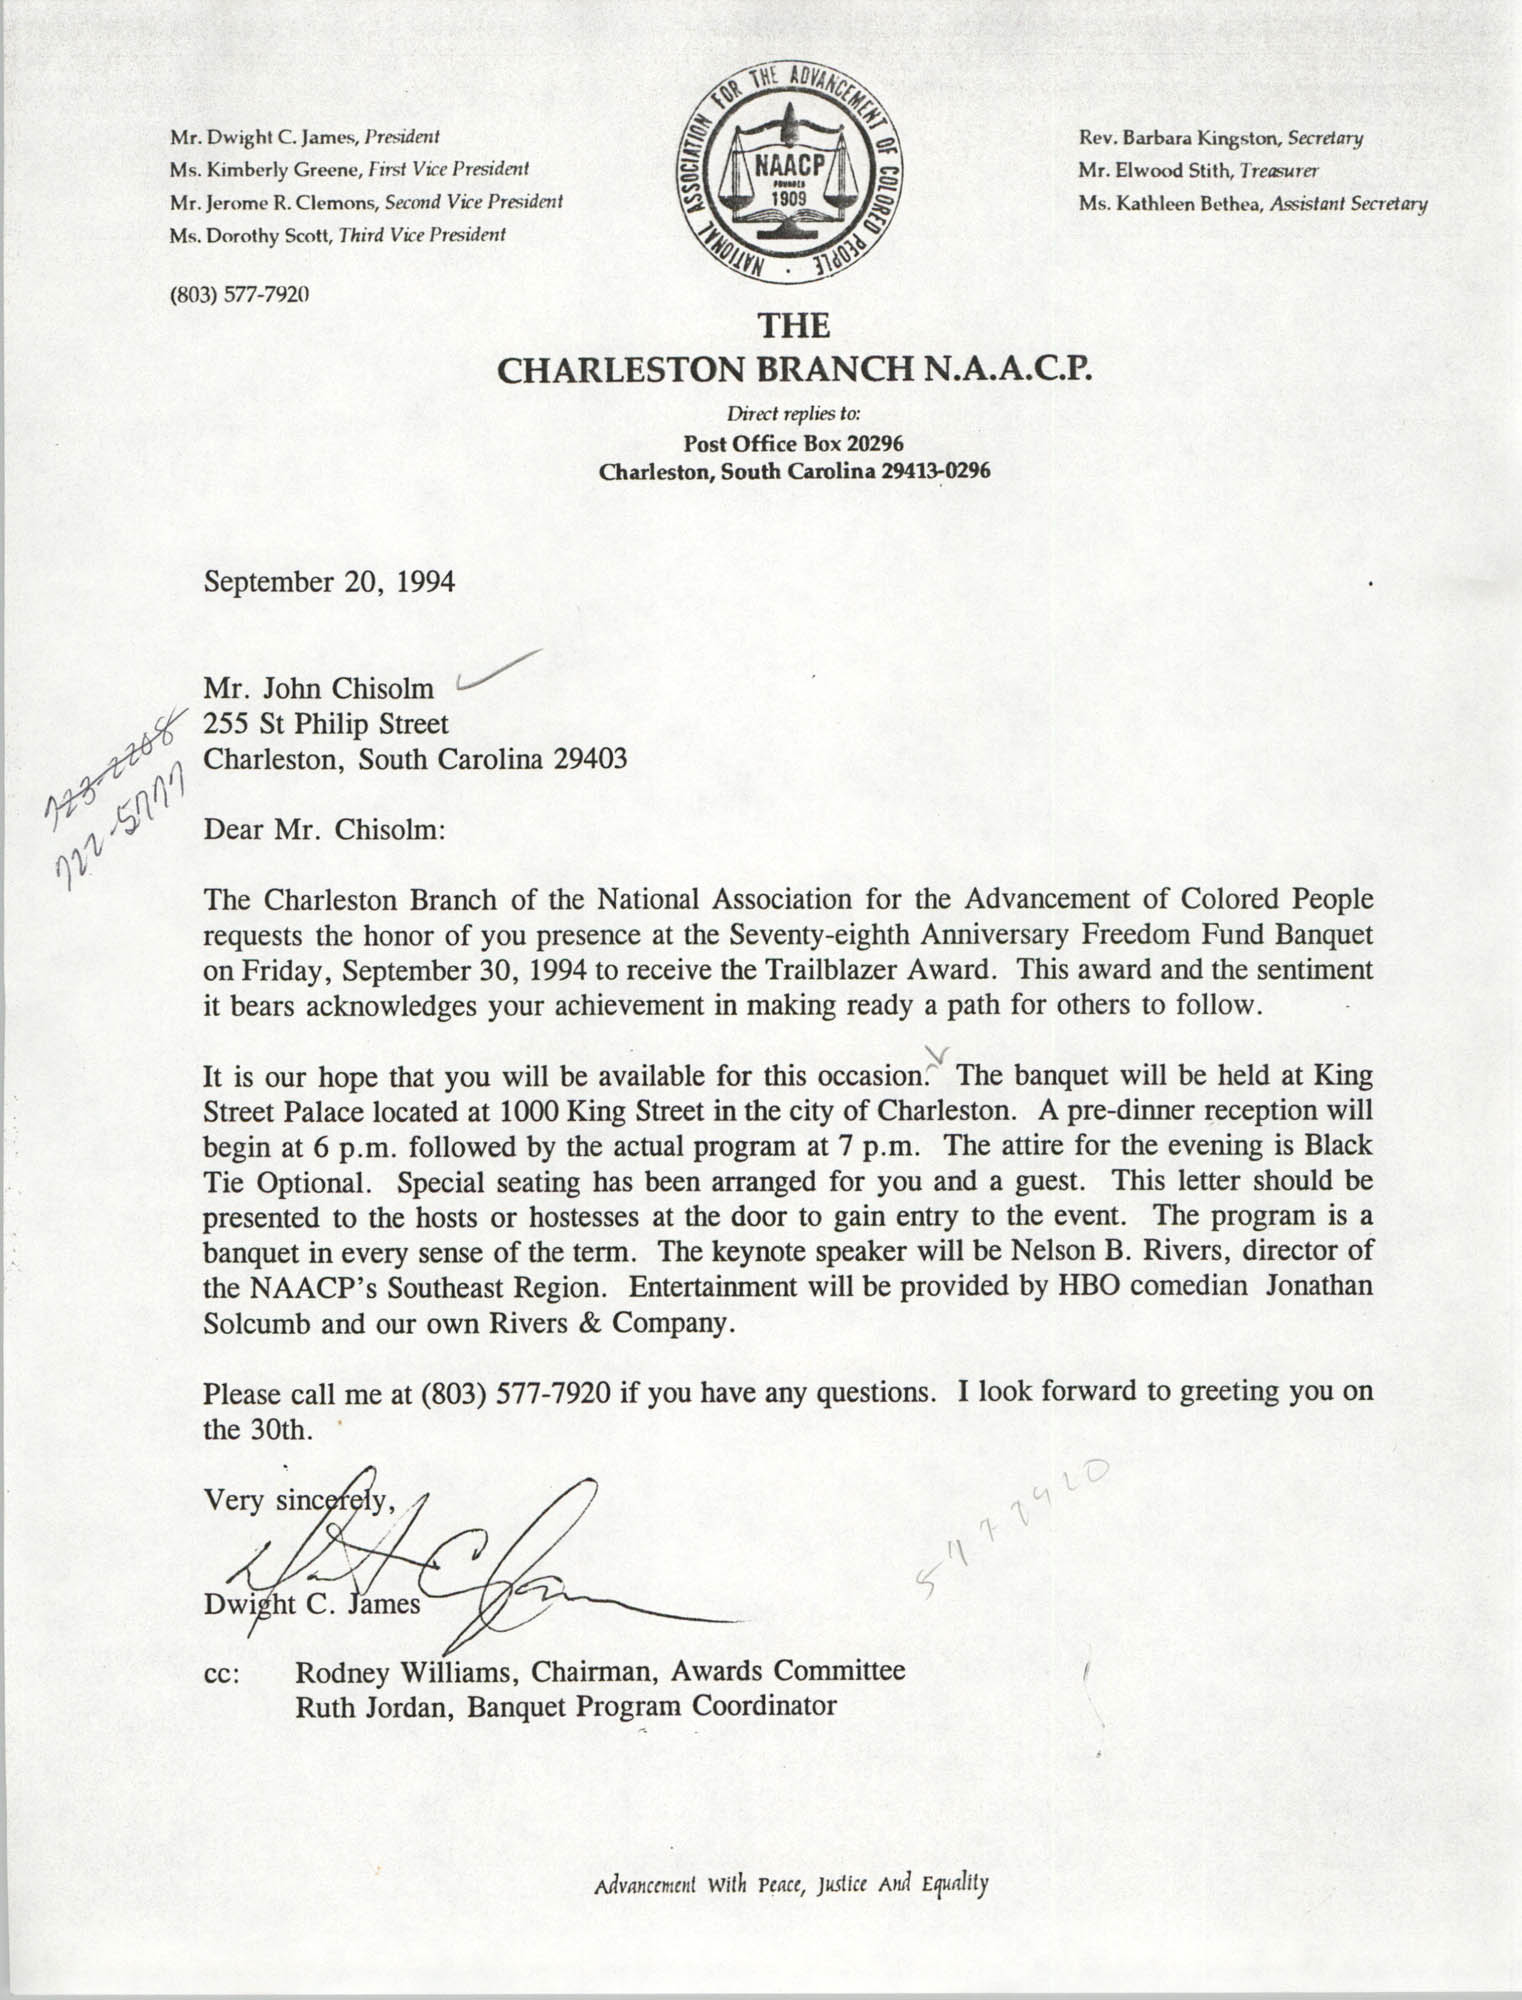 Letter from Dwight C. James to John Chisolm, September 20, 1994